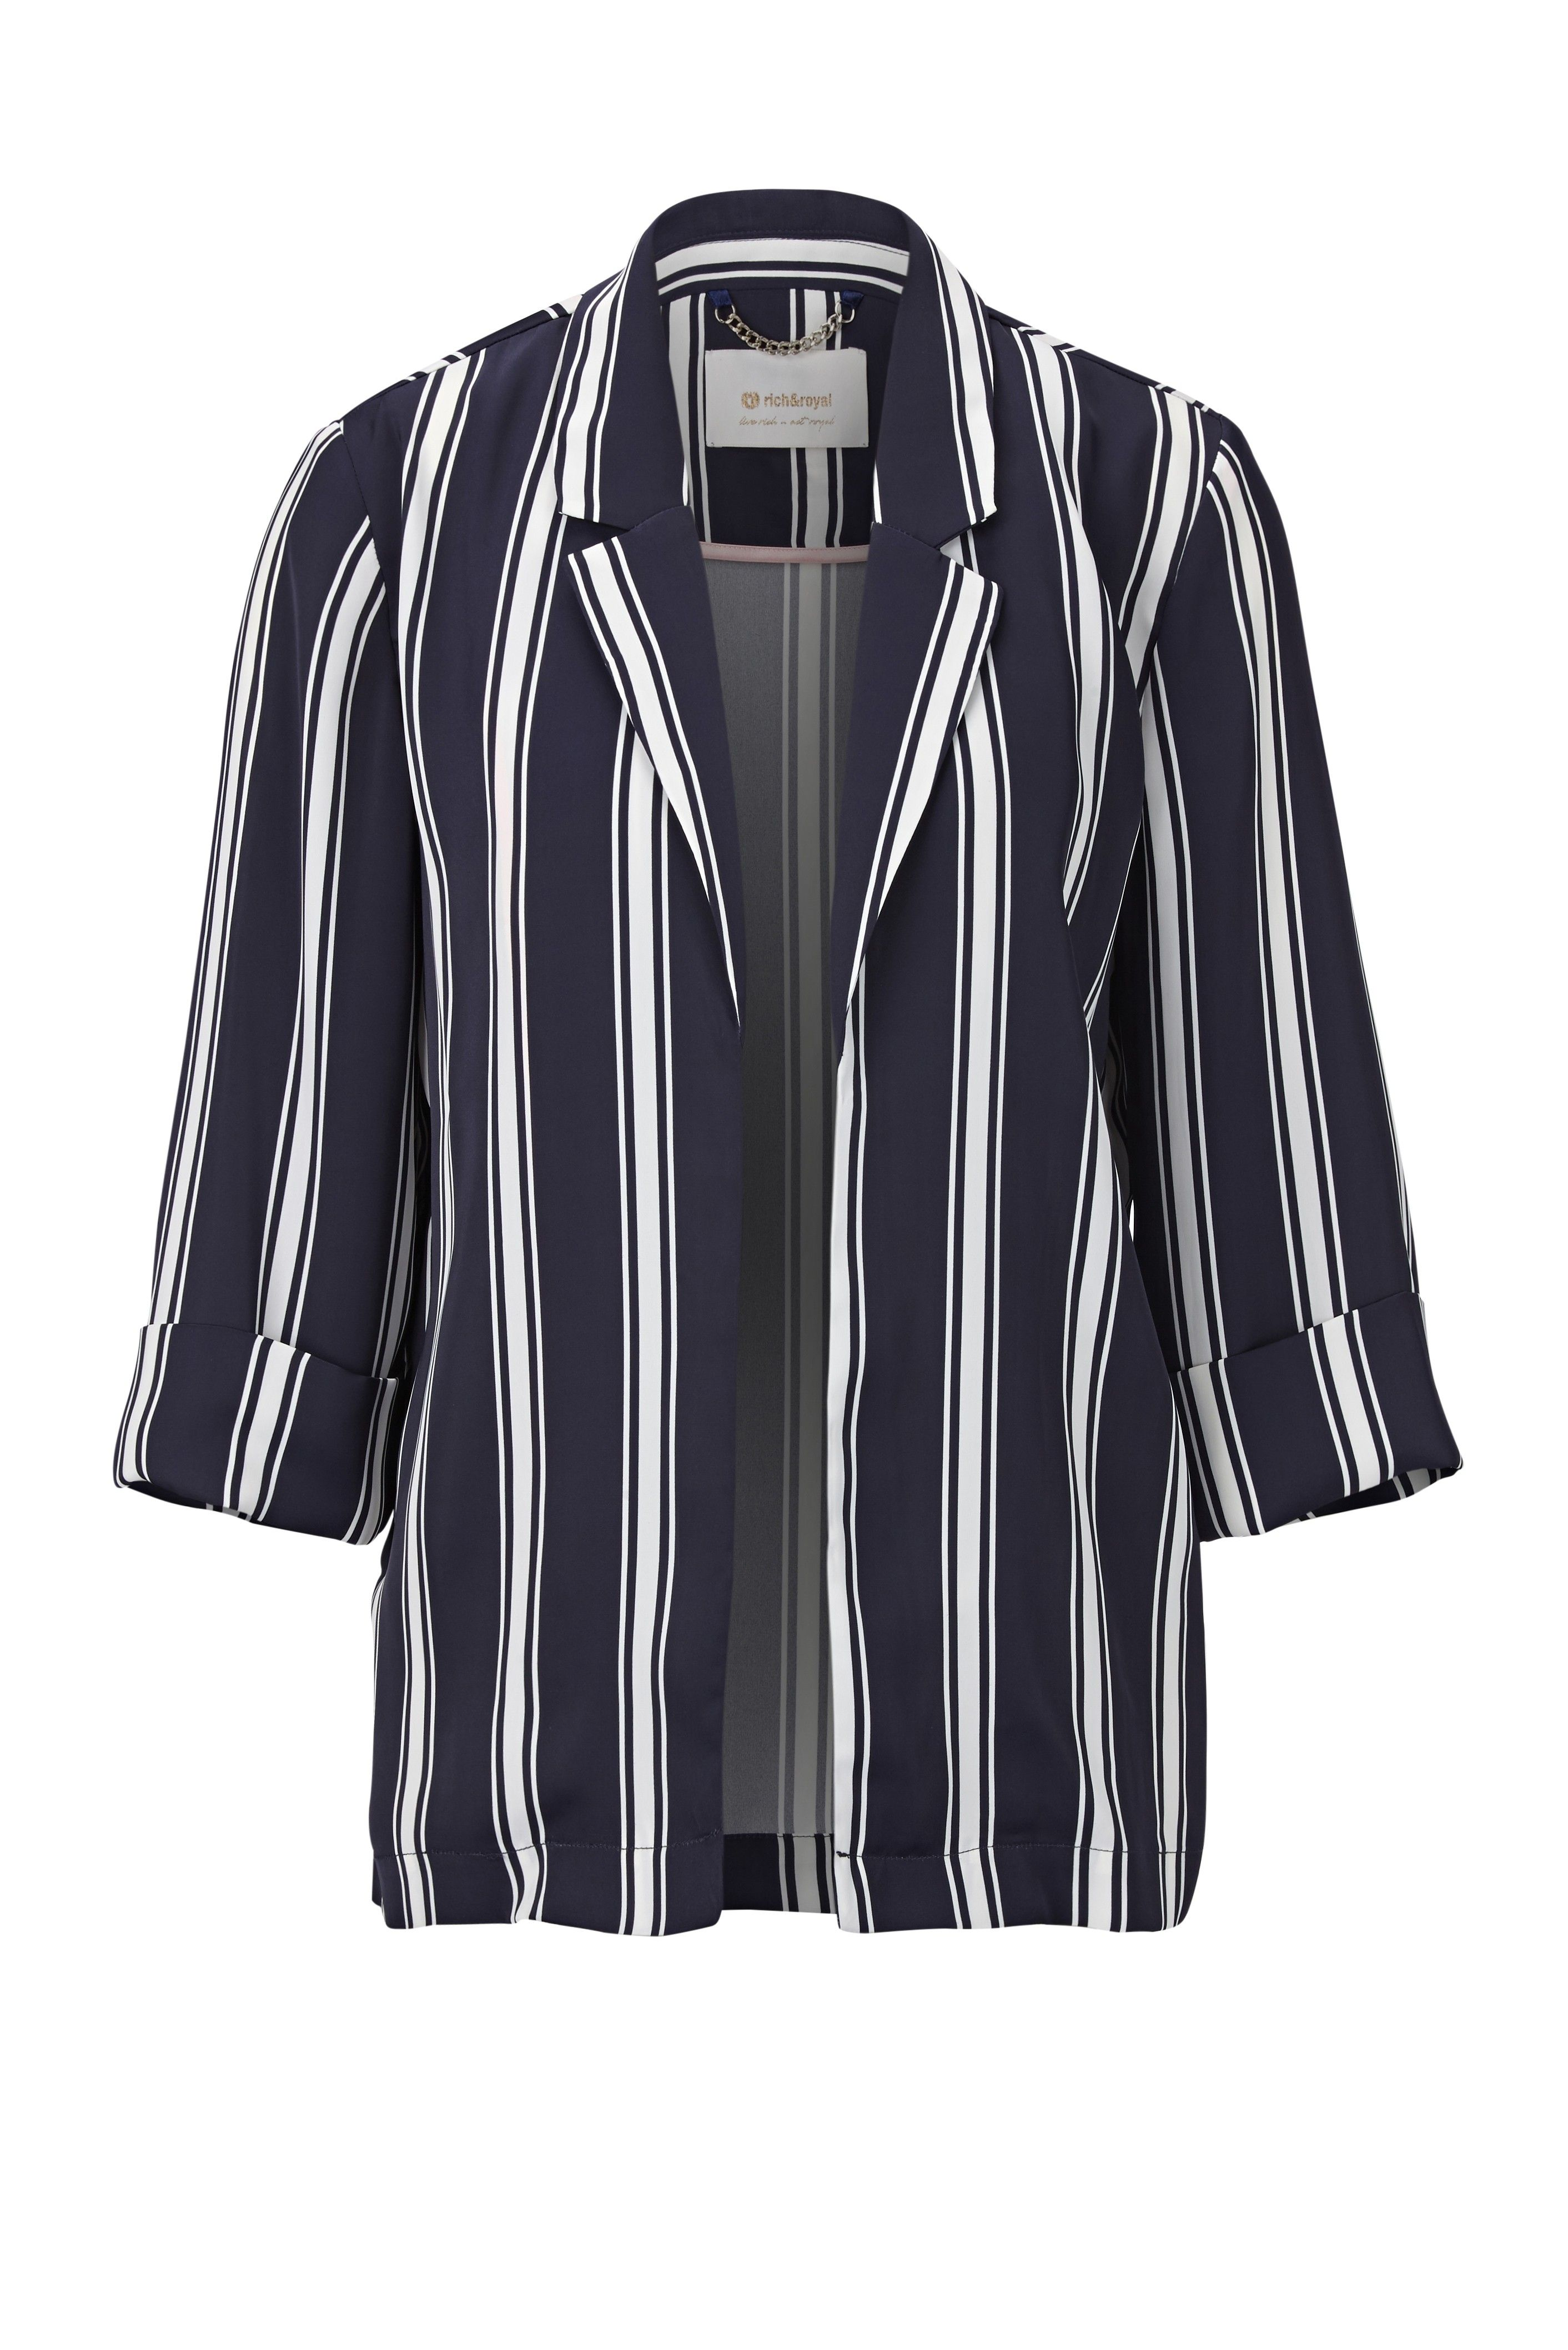 RICH & ROYAL - Damen Jacke - Blazer Striped Oversize - Deep Blue